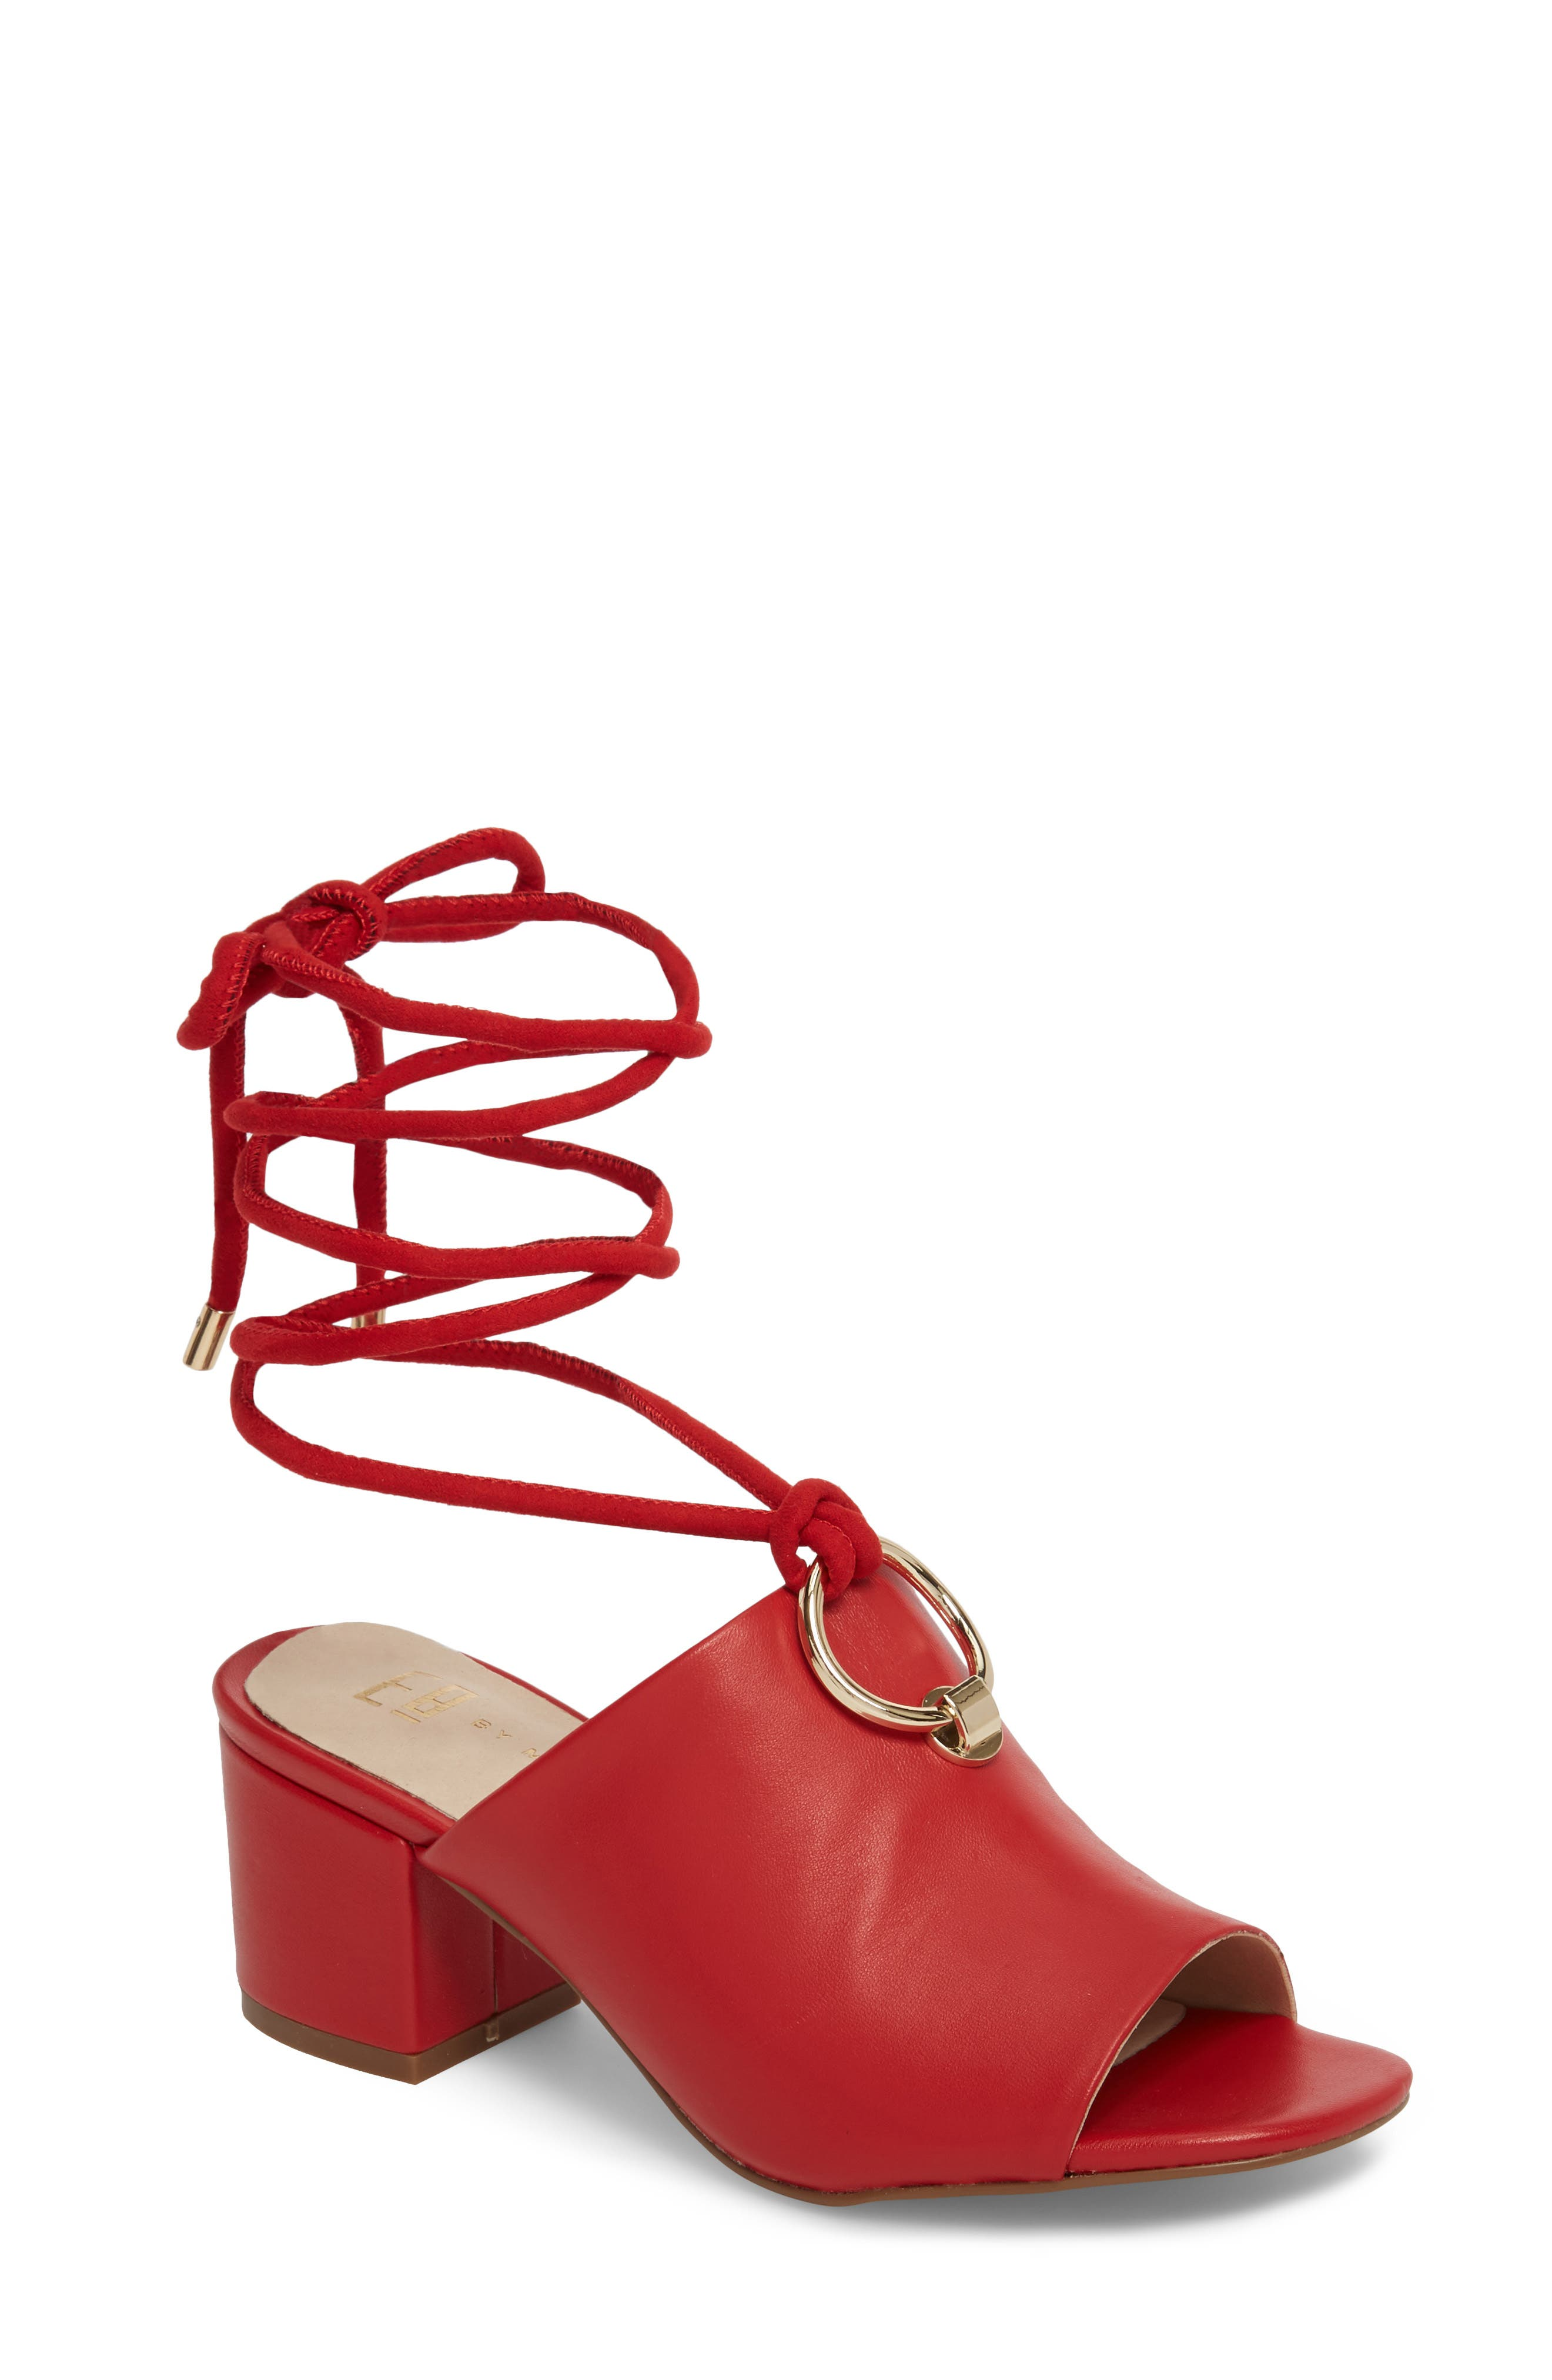 Mason Ankle Tie Sandal,                         Main,                         color, Red Leather